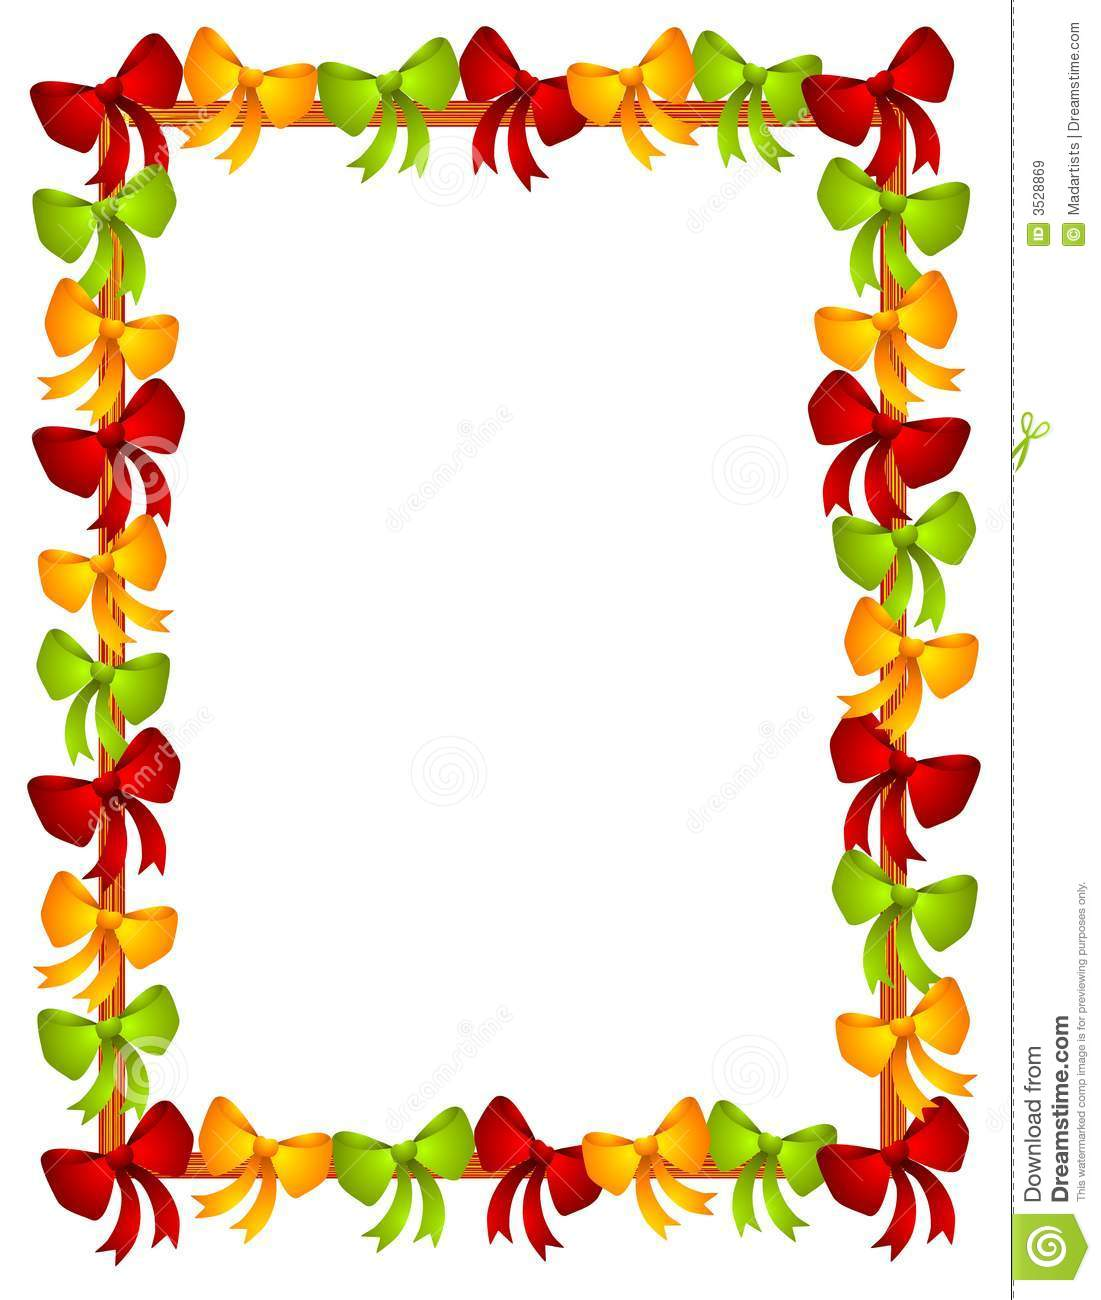 Christmas Borders And Frames  - Clipart Frames And Borders